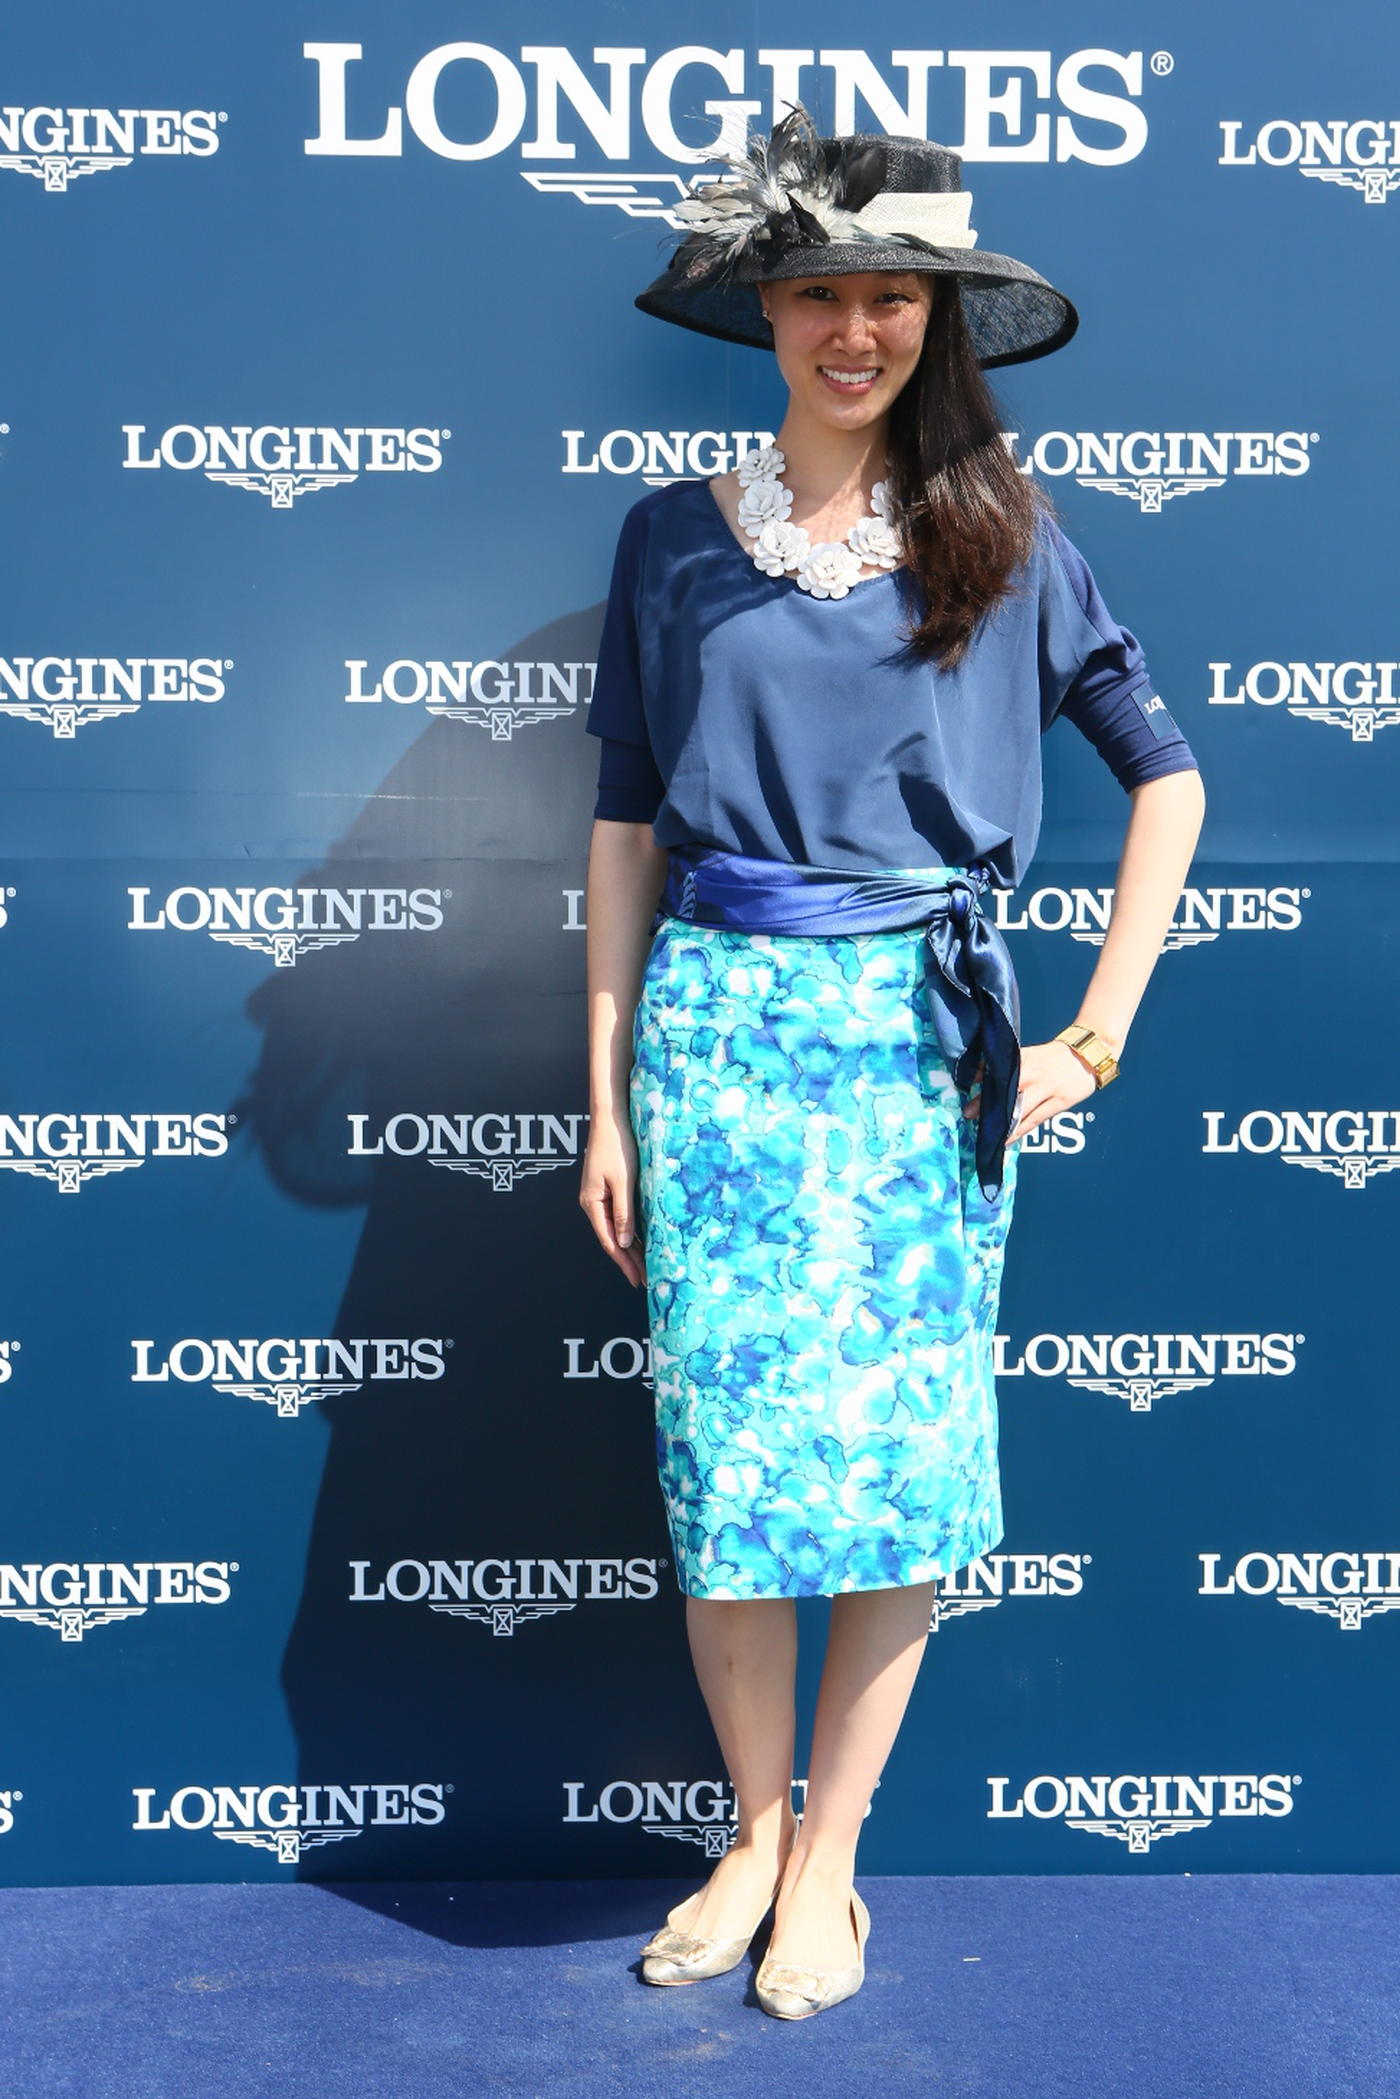 Longines Flat Racing Event: Longines at the China Equine Cultural Festival 6